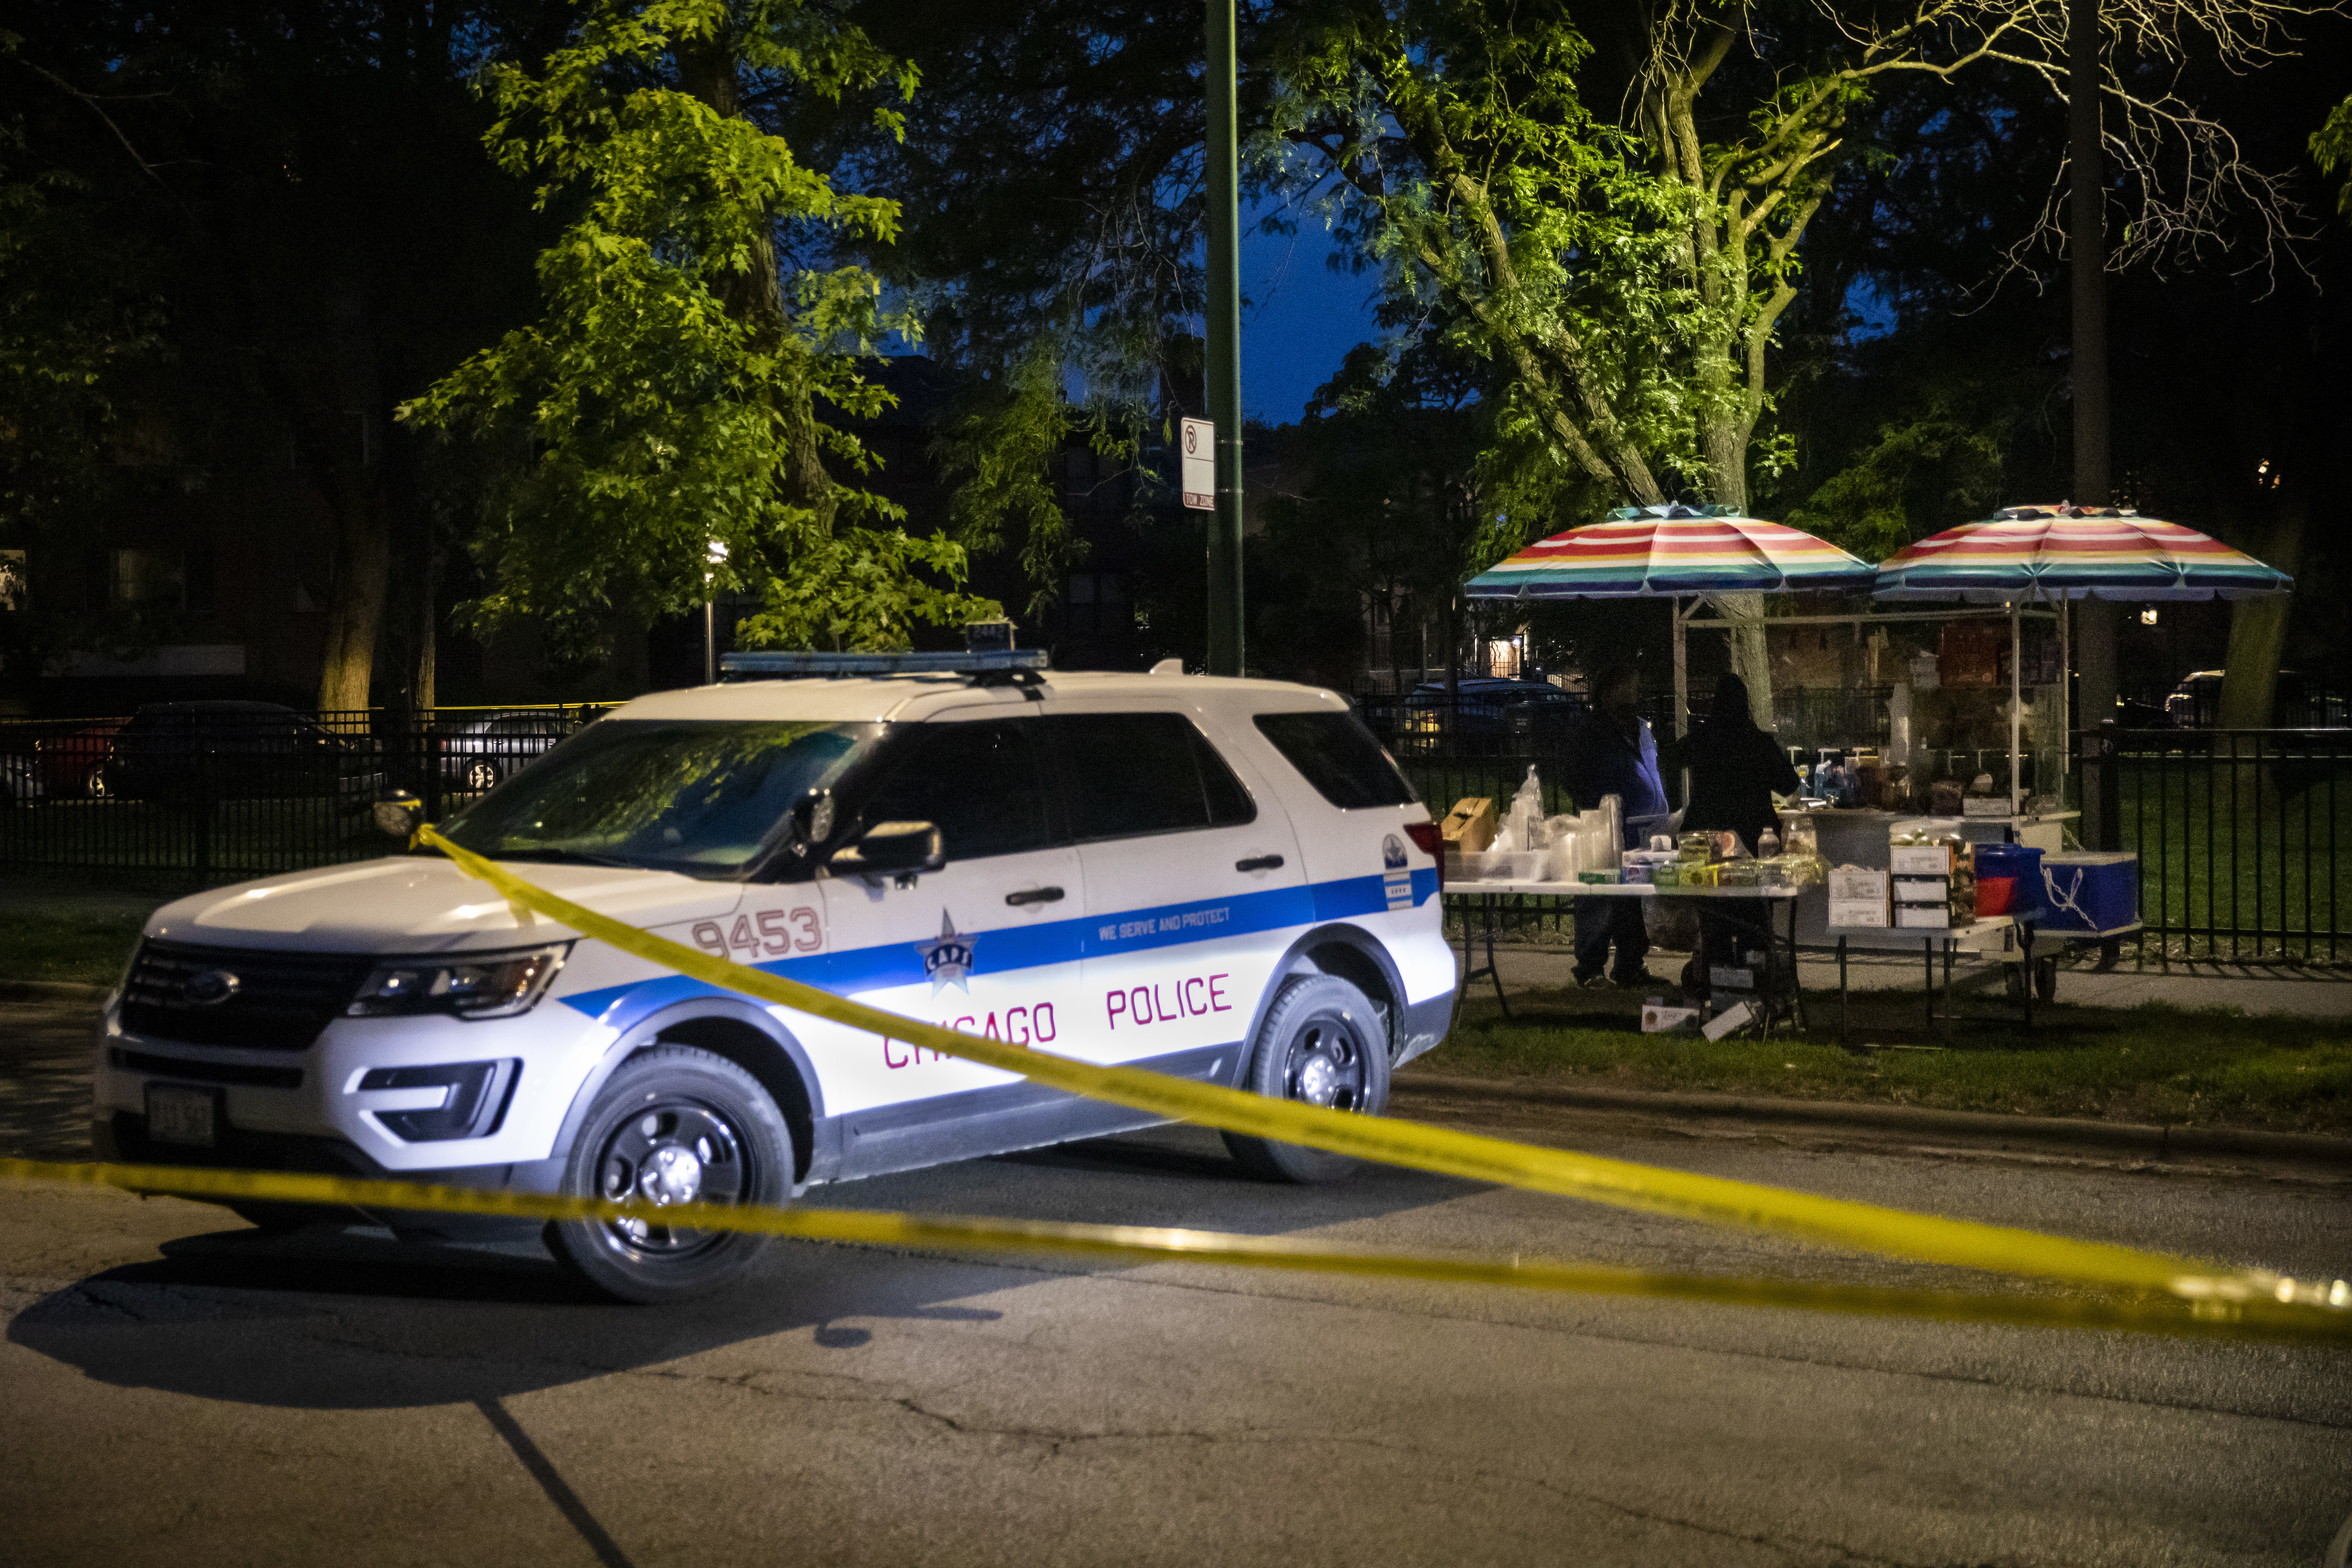 Chicago police investigate in the 7300 block of North Rogers Avenue, near an elotera stand outside Pottawattomie Park in Rogers Park, where police said a 28-year-old man was shot multiple times Sunday night.